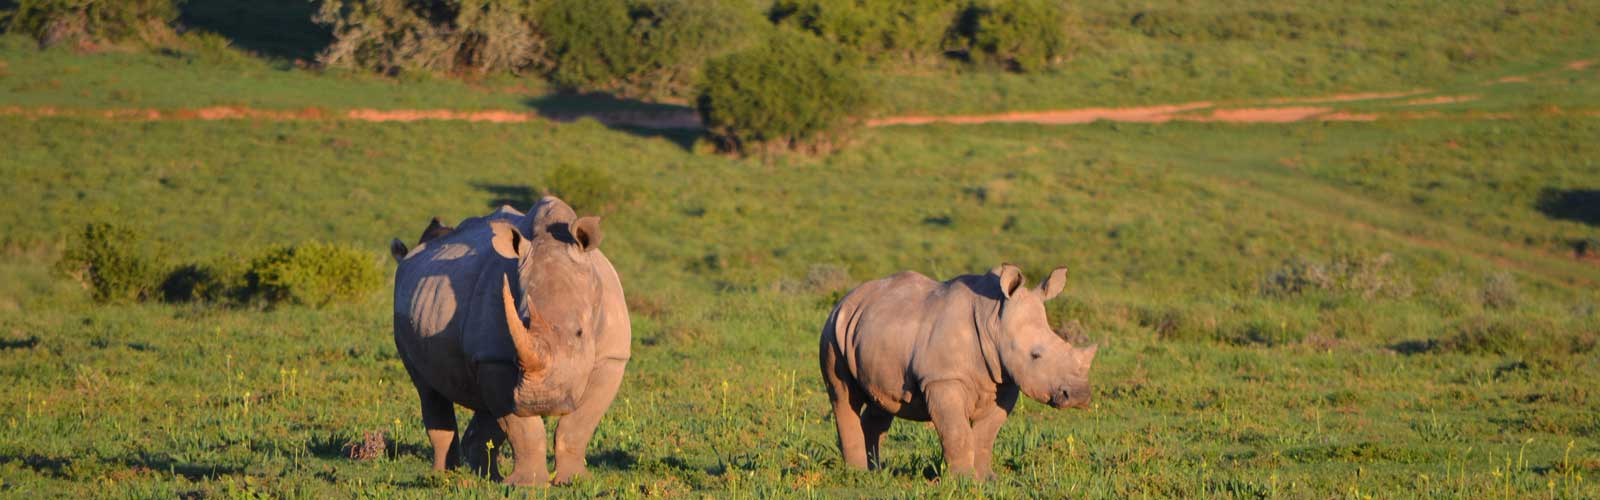 photograph of a rhino and her calf in africa